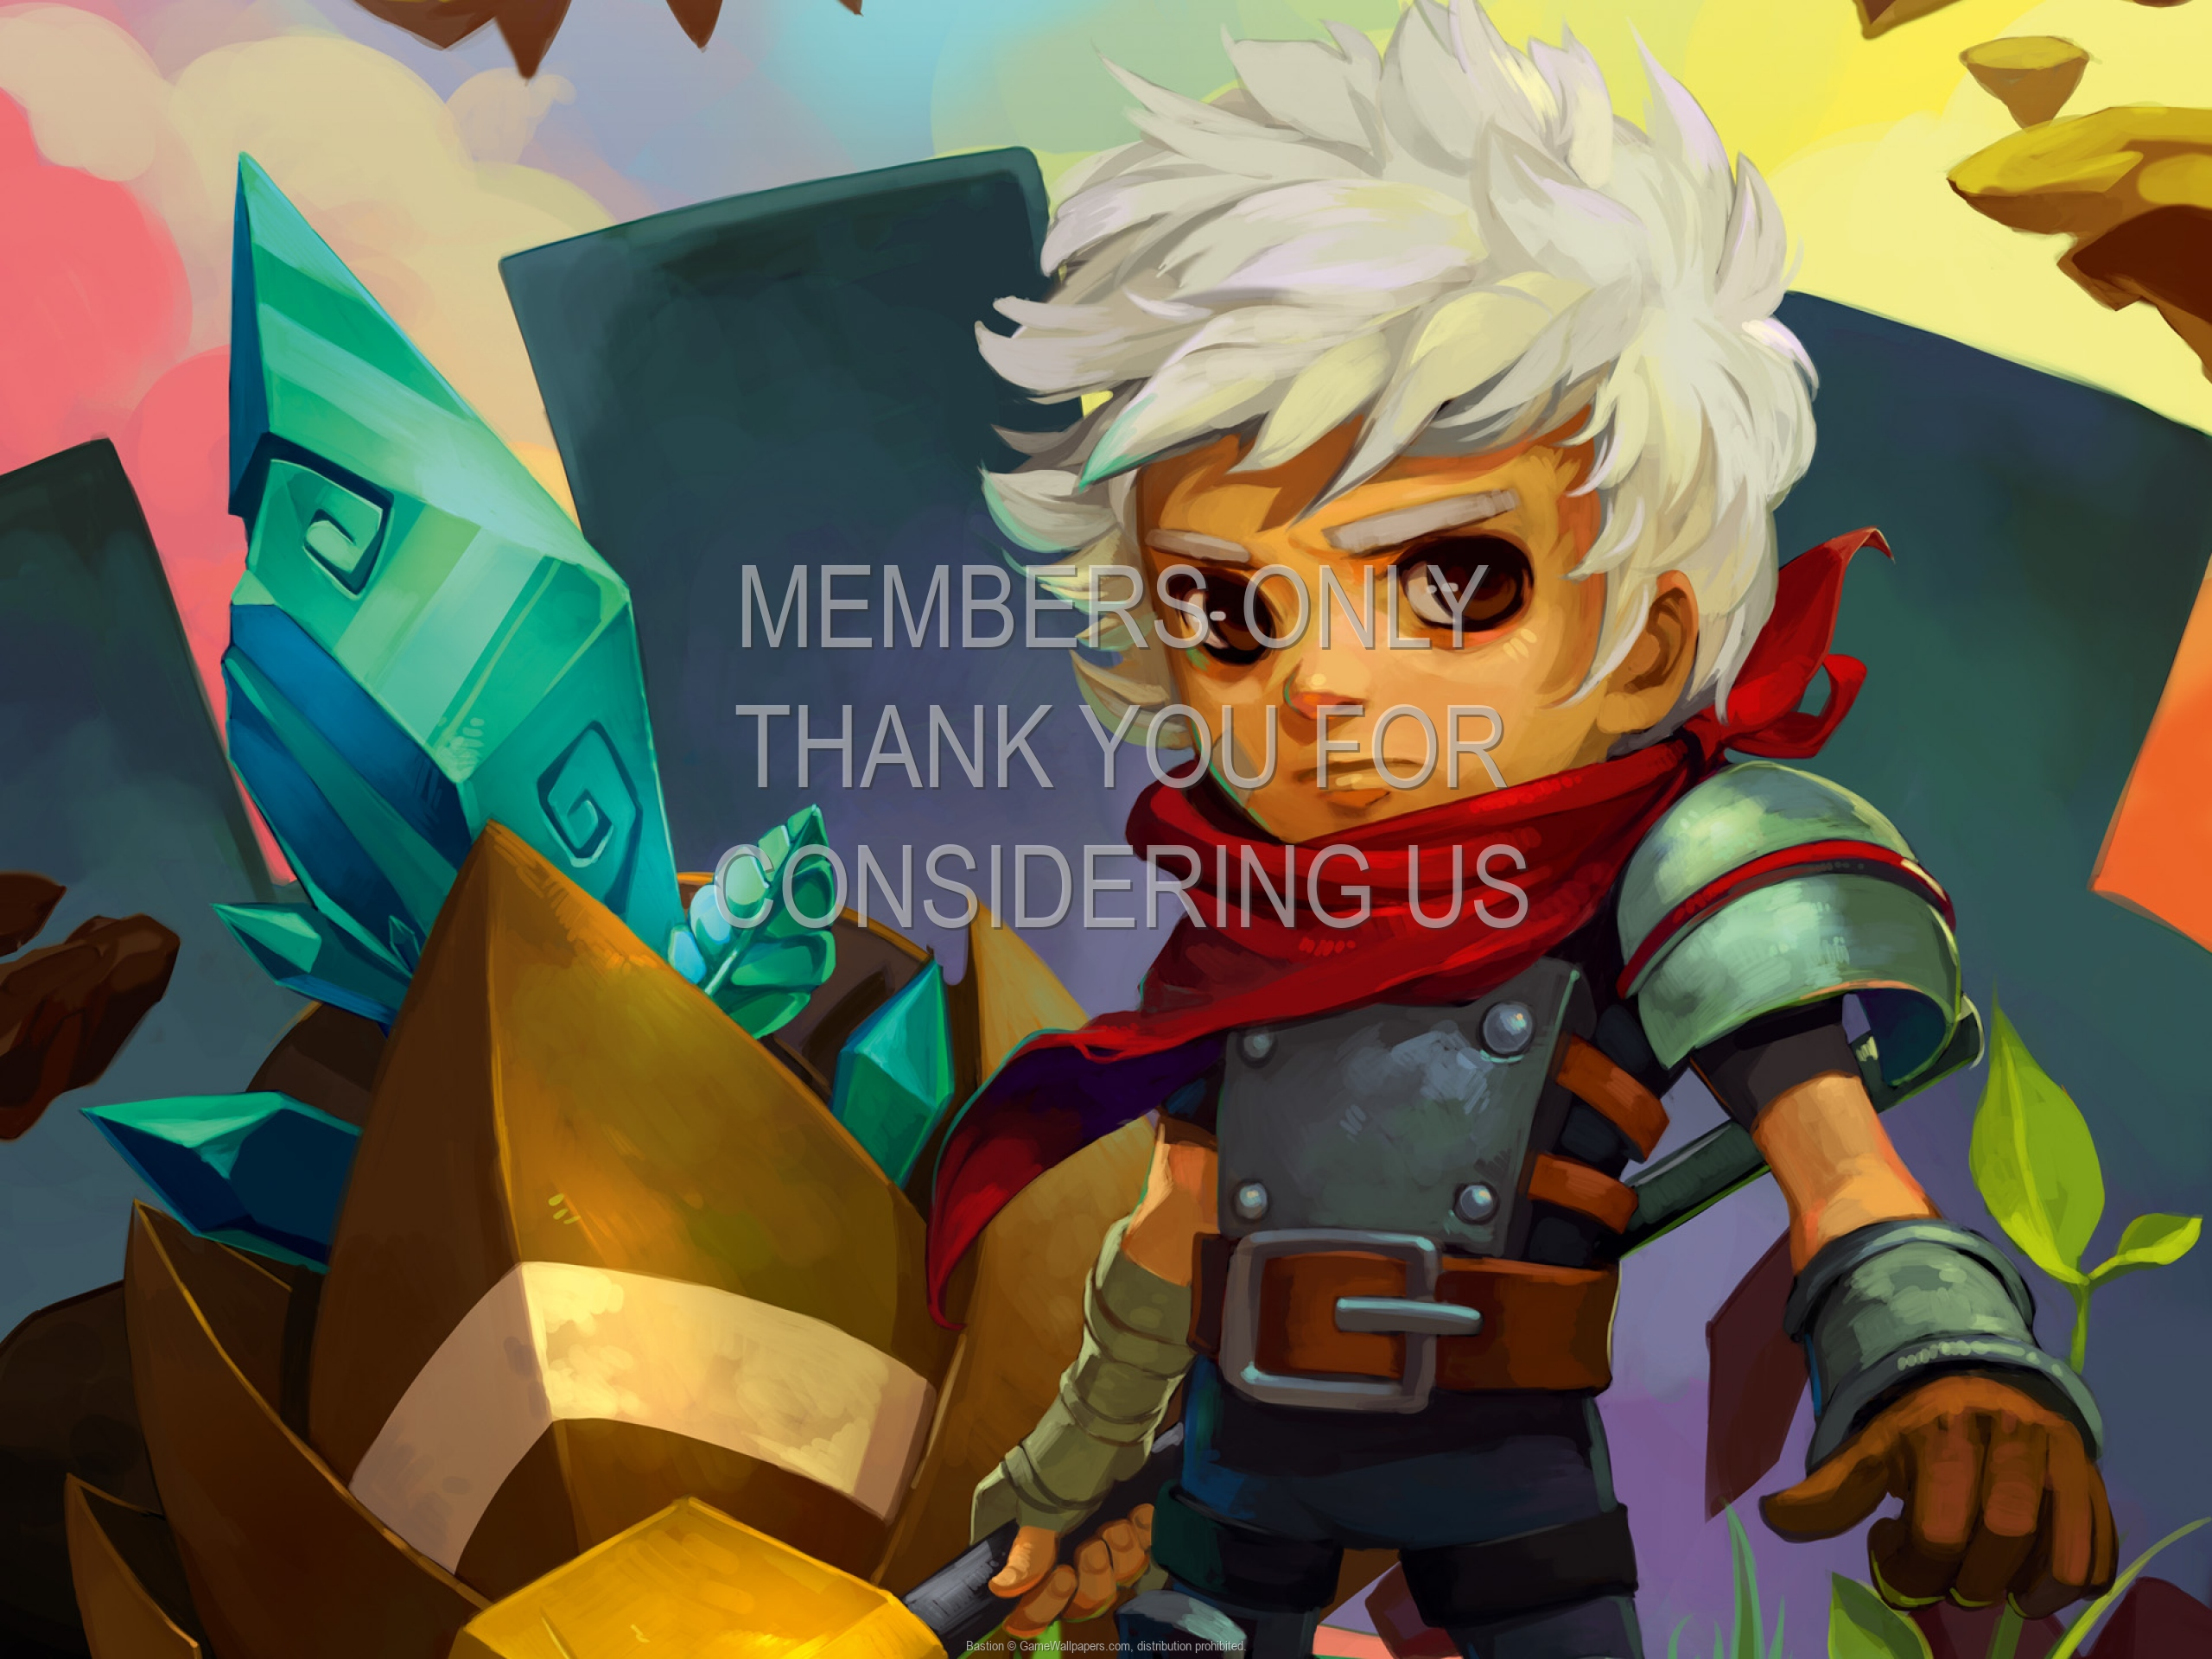 Bastion 1920x1080 Mobile wallpaper or background 01